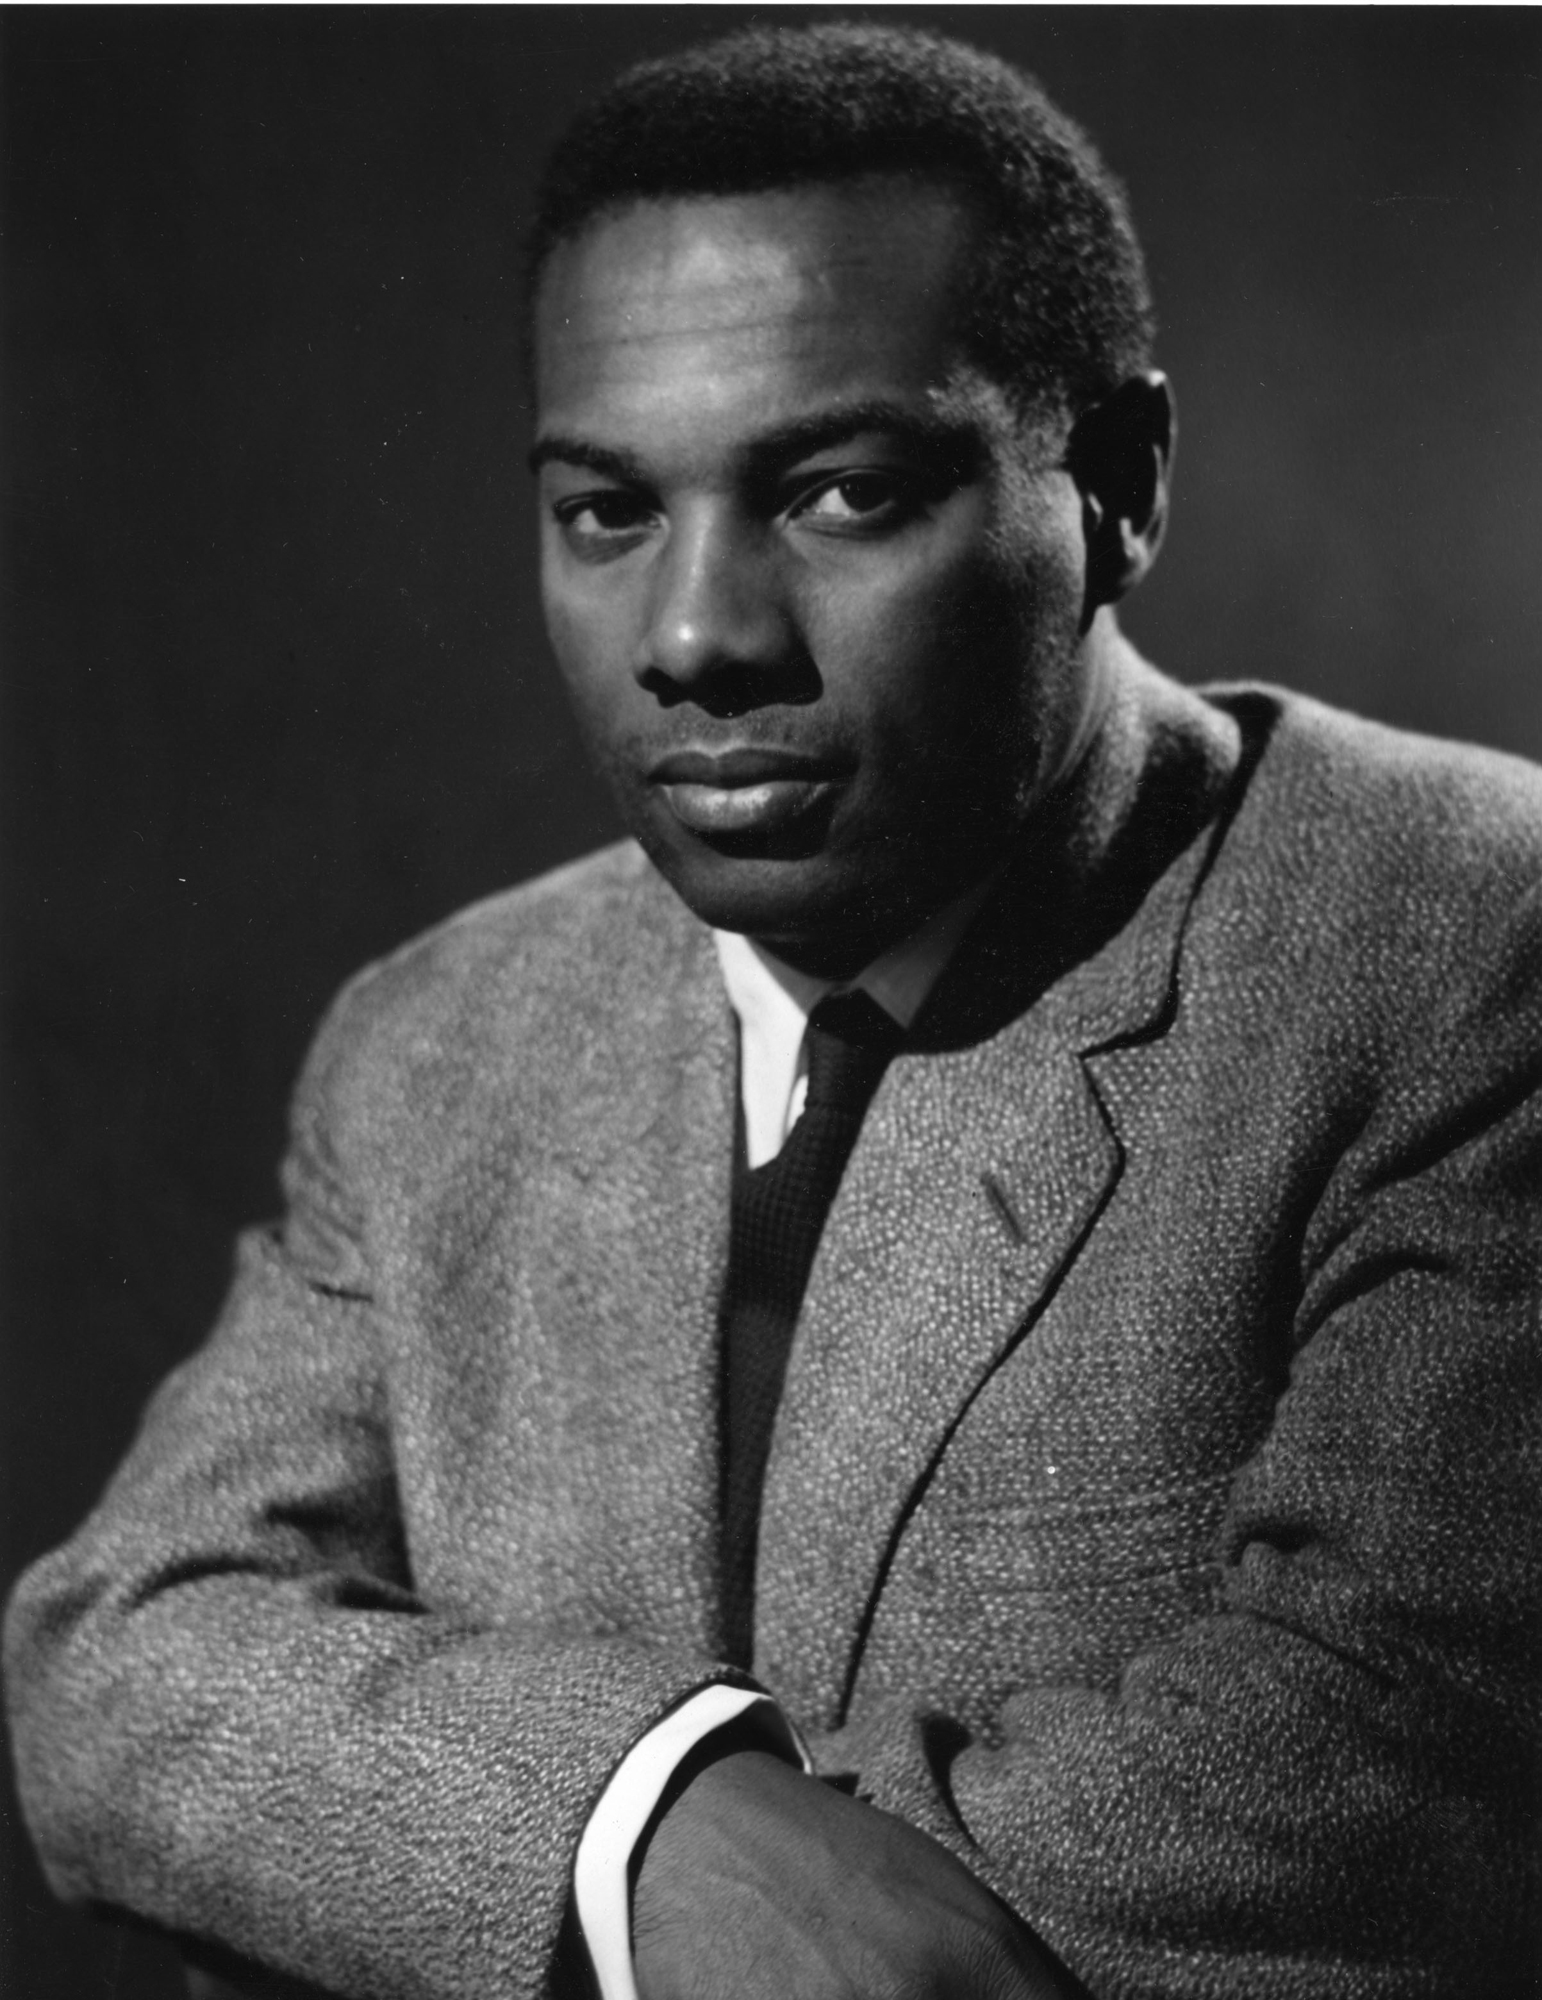 (c) BBC. Picture shows - Errol John, the West Indian actor and author, who is heard in many BBC drama productions. He will play the leading role in his own play 'Small Island Moon', which will be prsented in the BBC Third World Programme on Tuesday 27th May 1958.